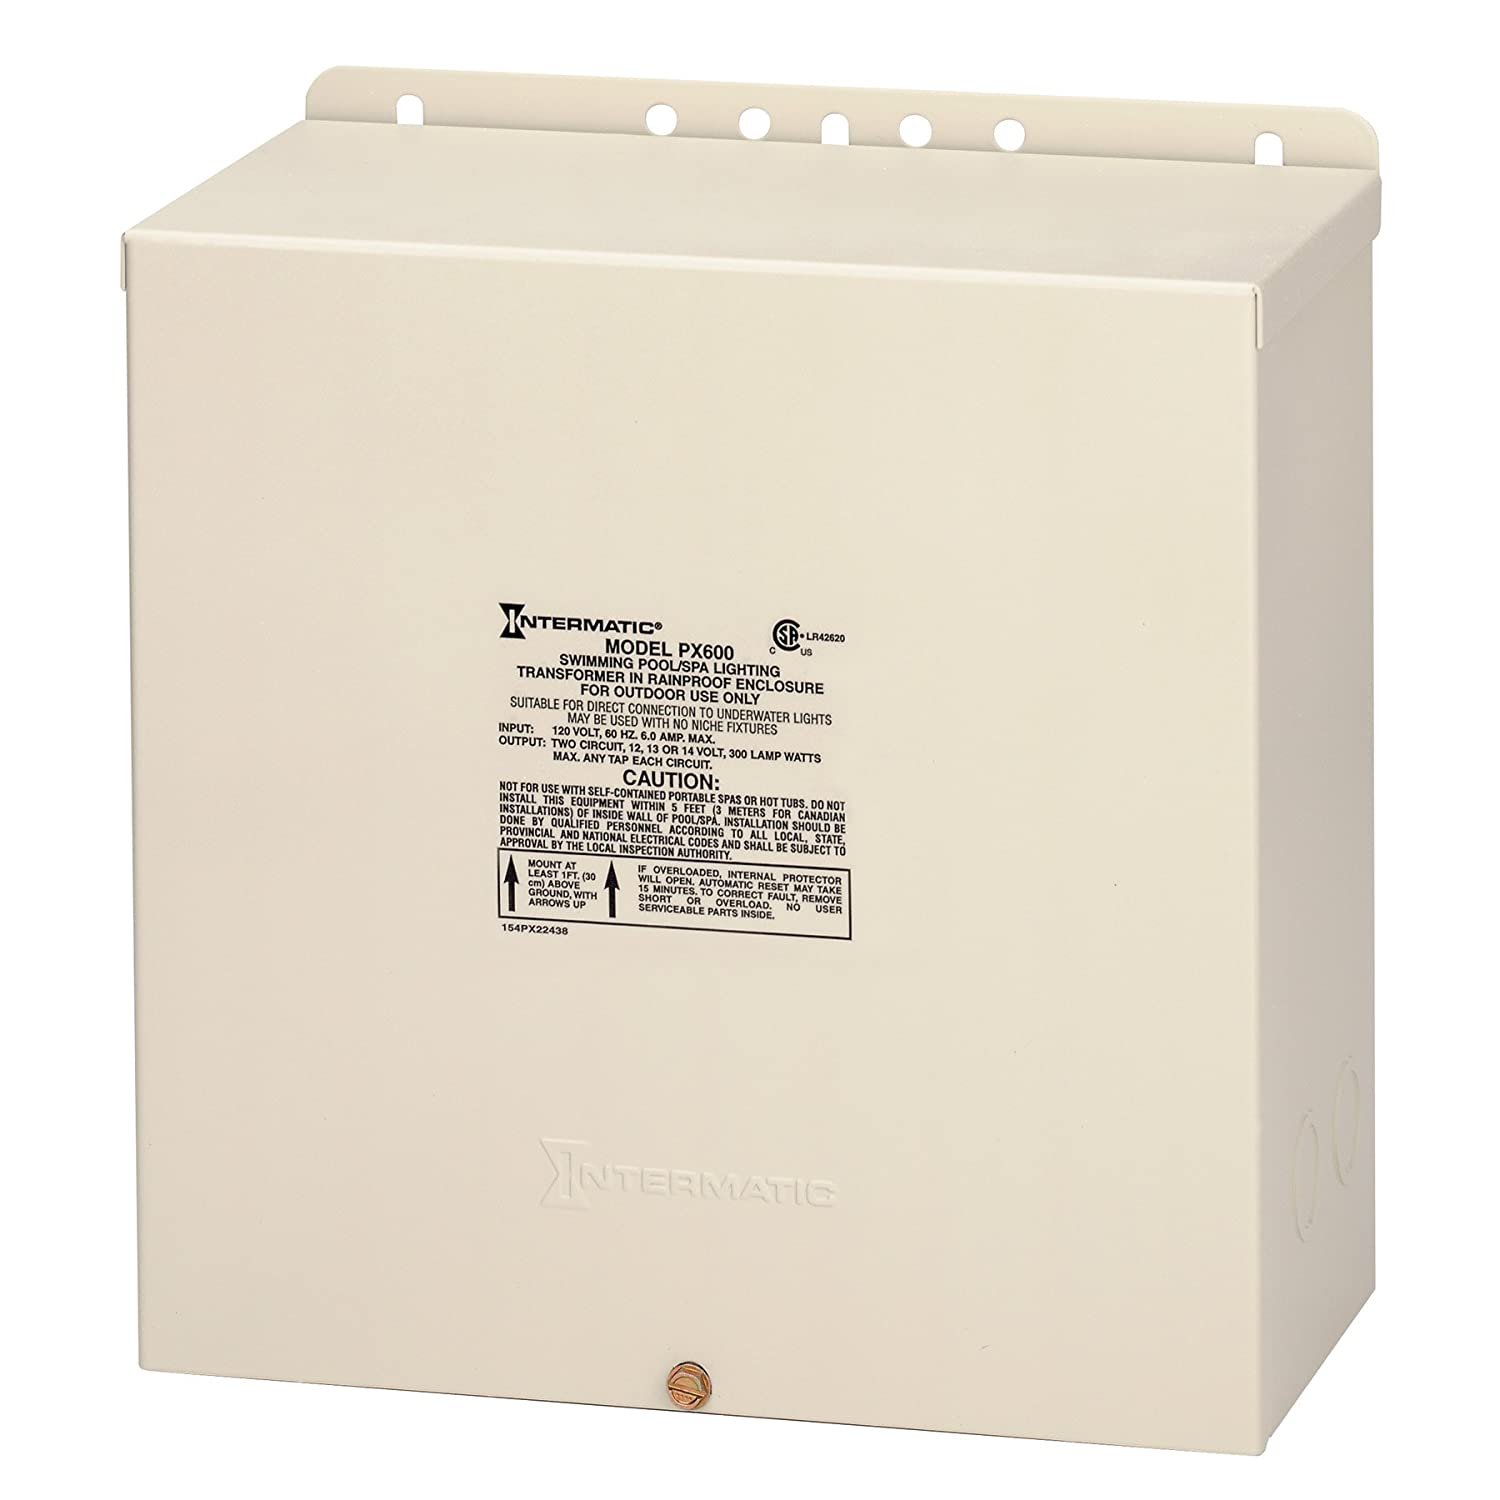 71u8MG HI9L._SL1500_ amazon com intermatic px300 12v 300w transformer with automatic intermatic px300 wiring diagram at bayanpartner.co